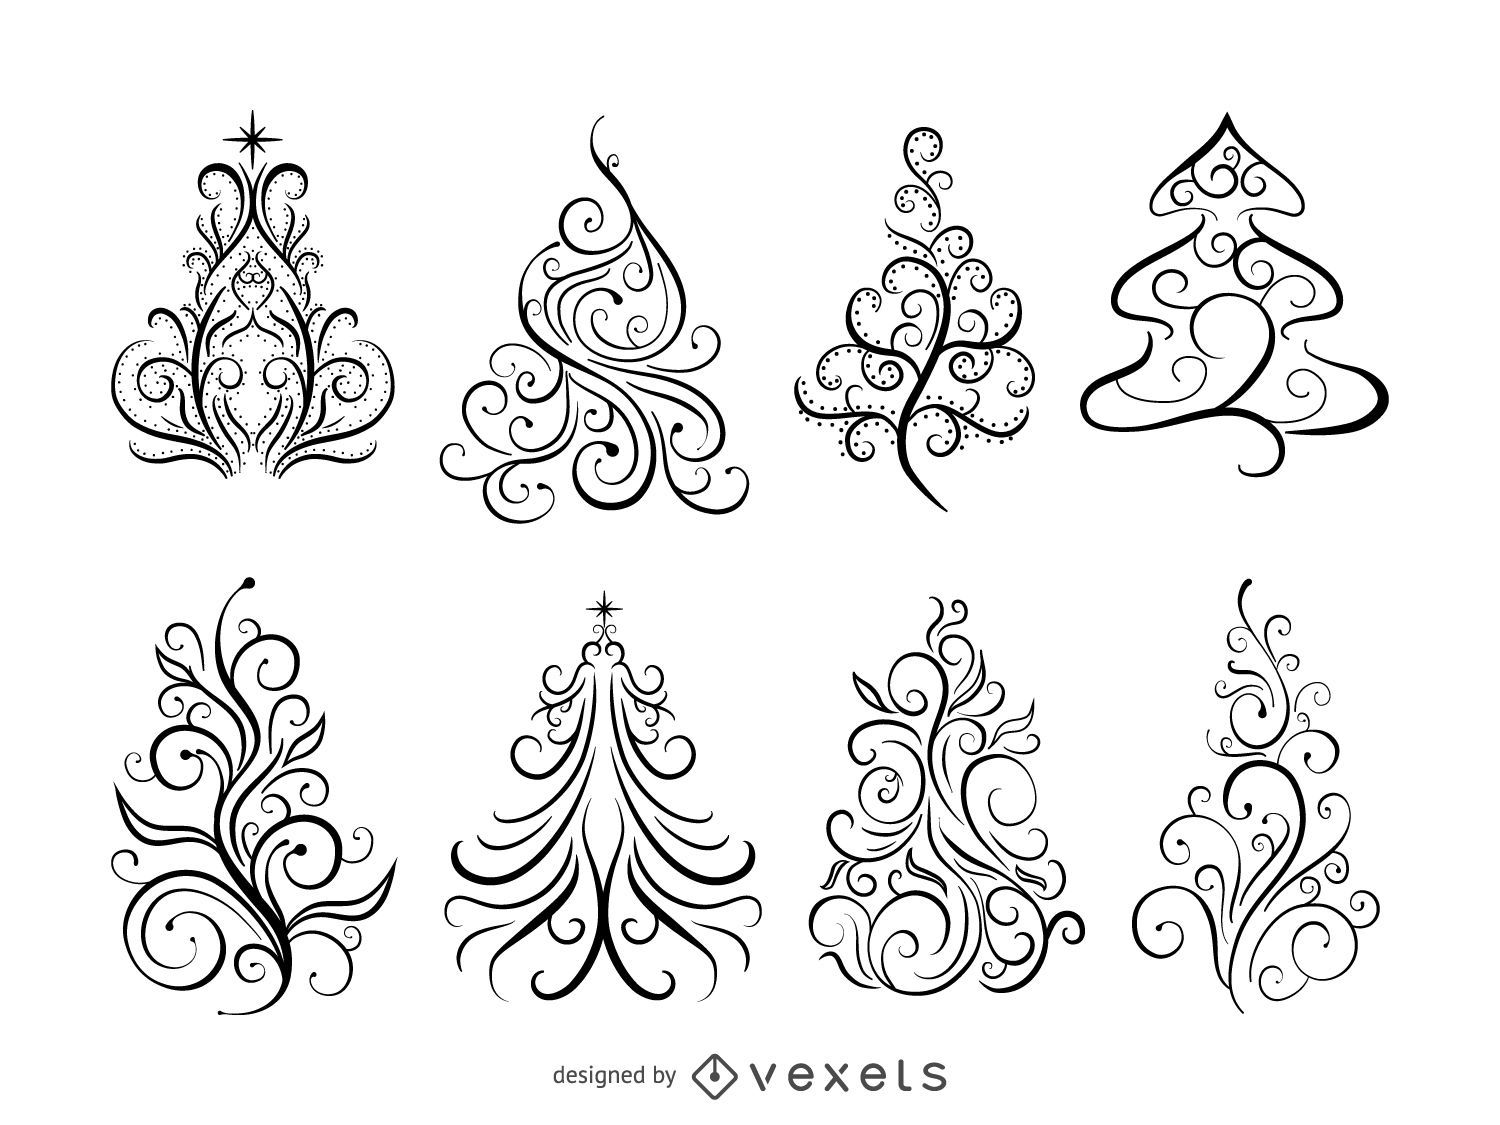 Ornamental christmas trees - Swirl Ornamental Christmas Trees Download Large Image 1601x1201px